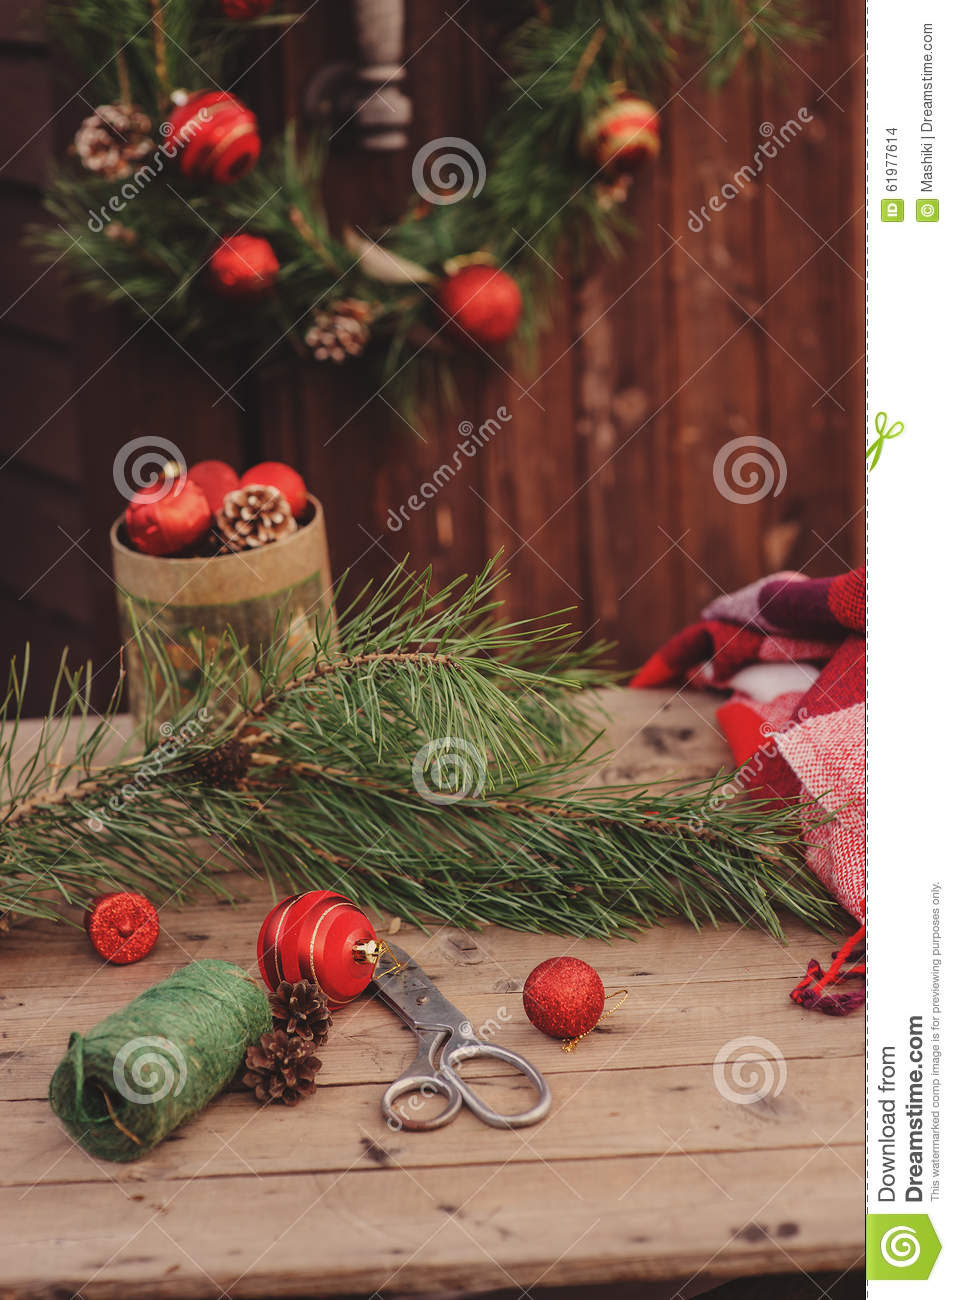 Christmas decorations at cozy wooden country house, outdoor setting on